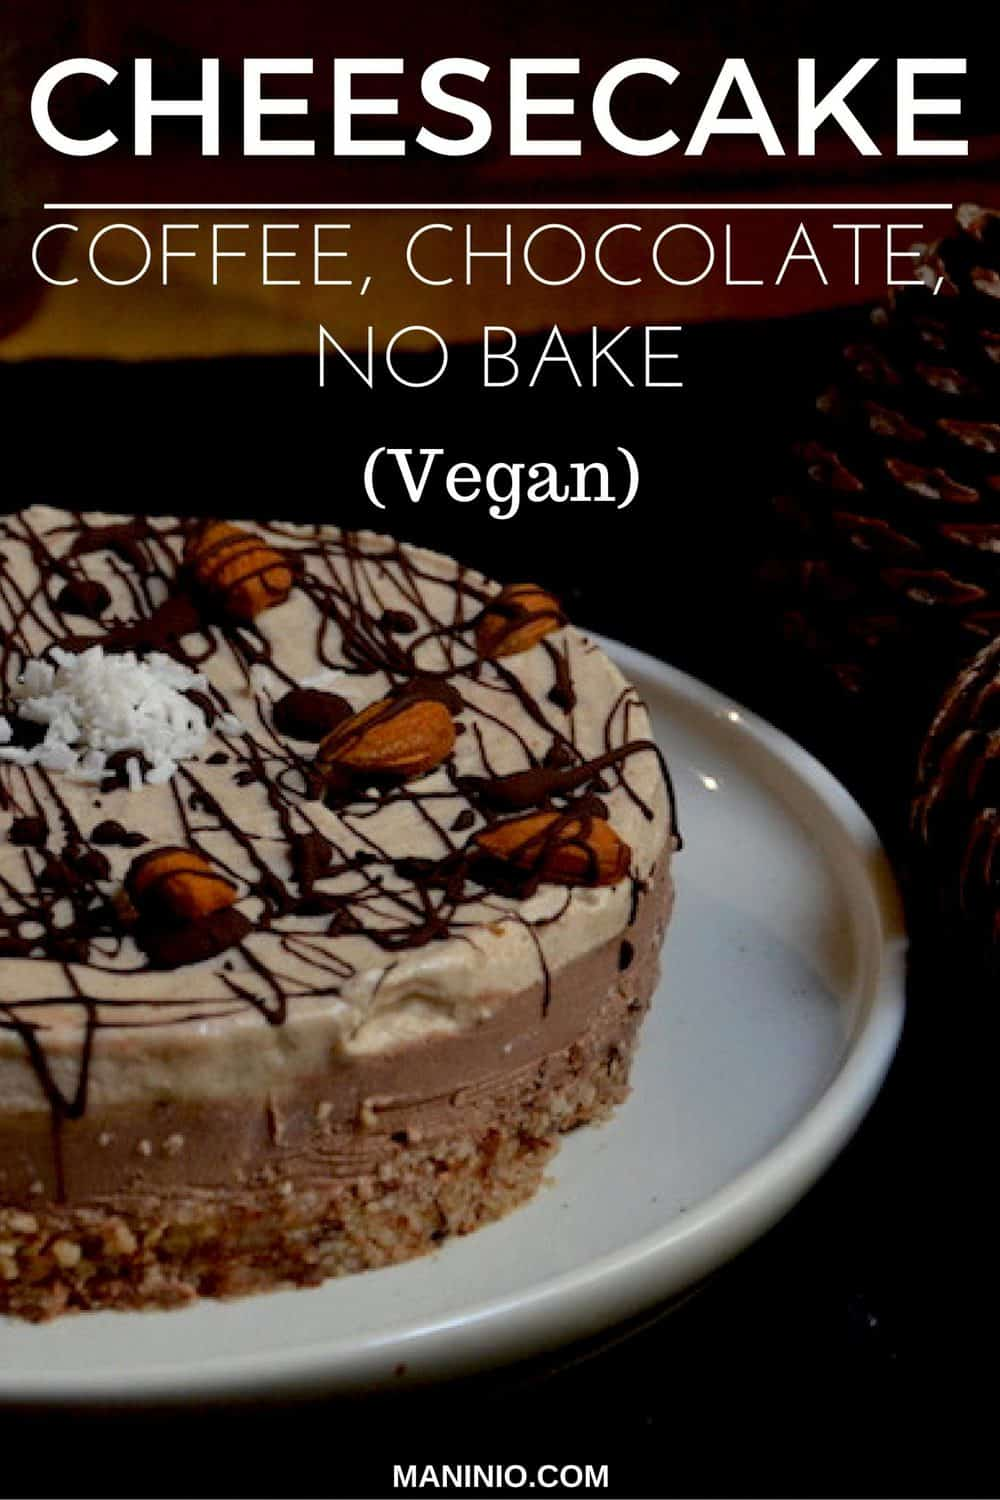 chocolate coffee cheesecake, Vegan. maninio.com #vegancheesecake #coffeecheesecake